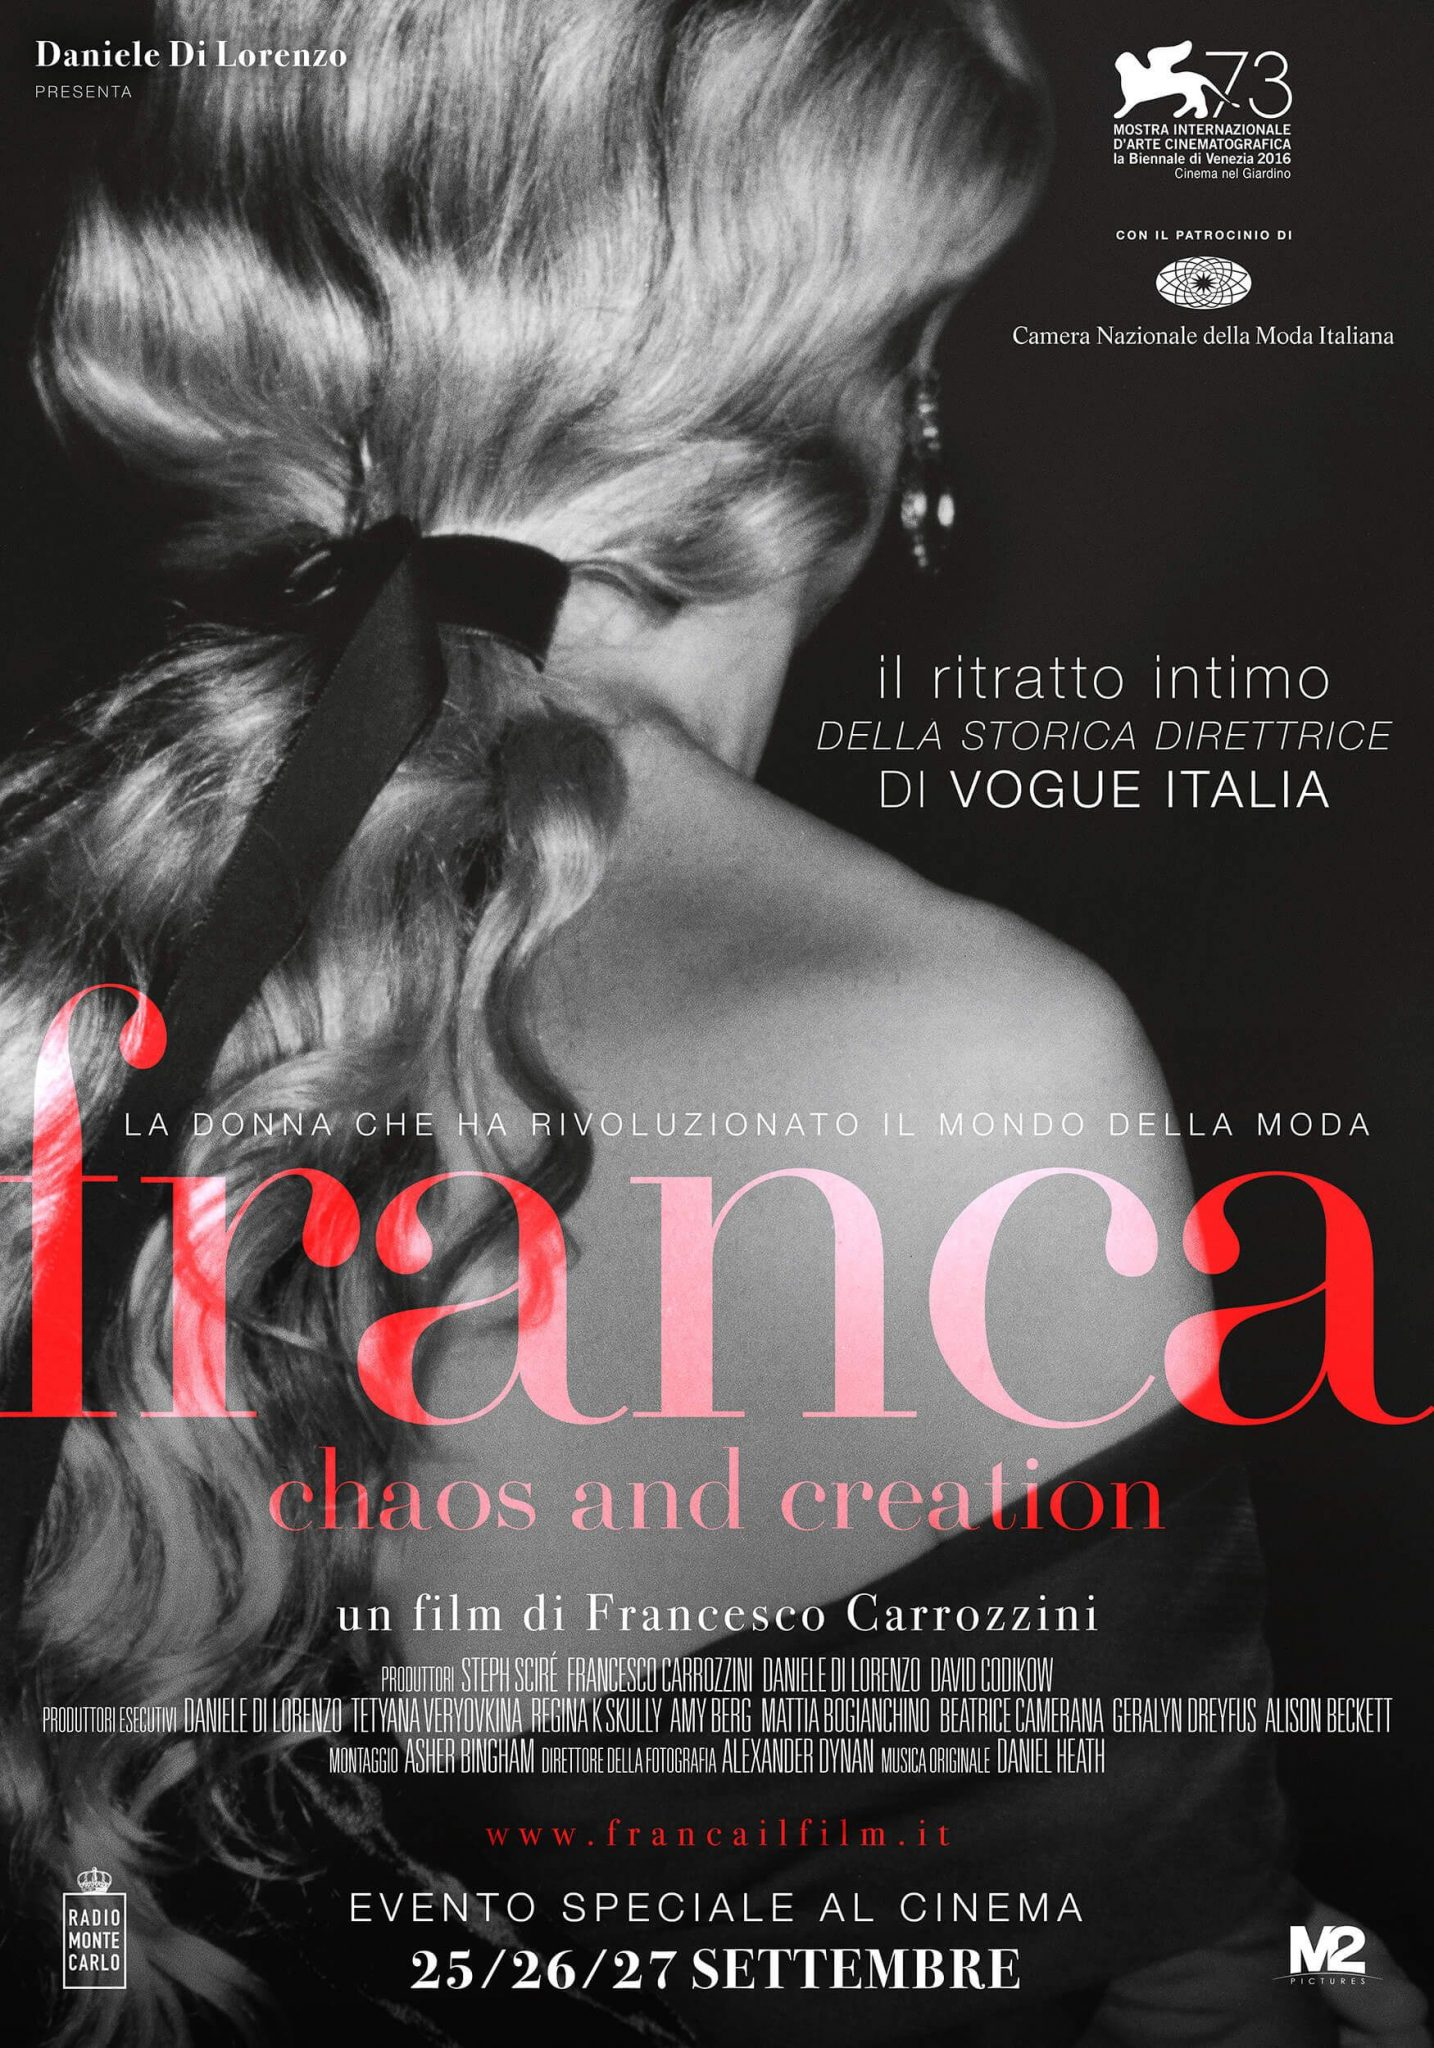 franca-chaos-and-creation-scaled.jpg